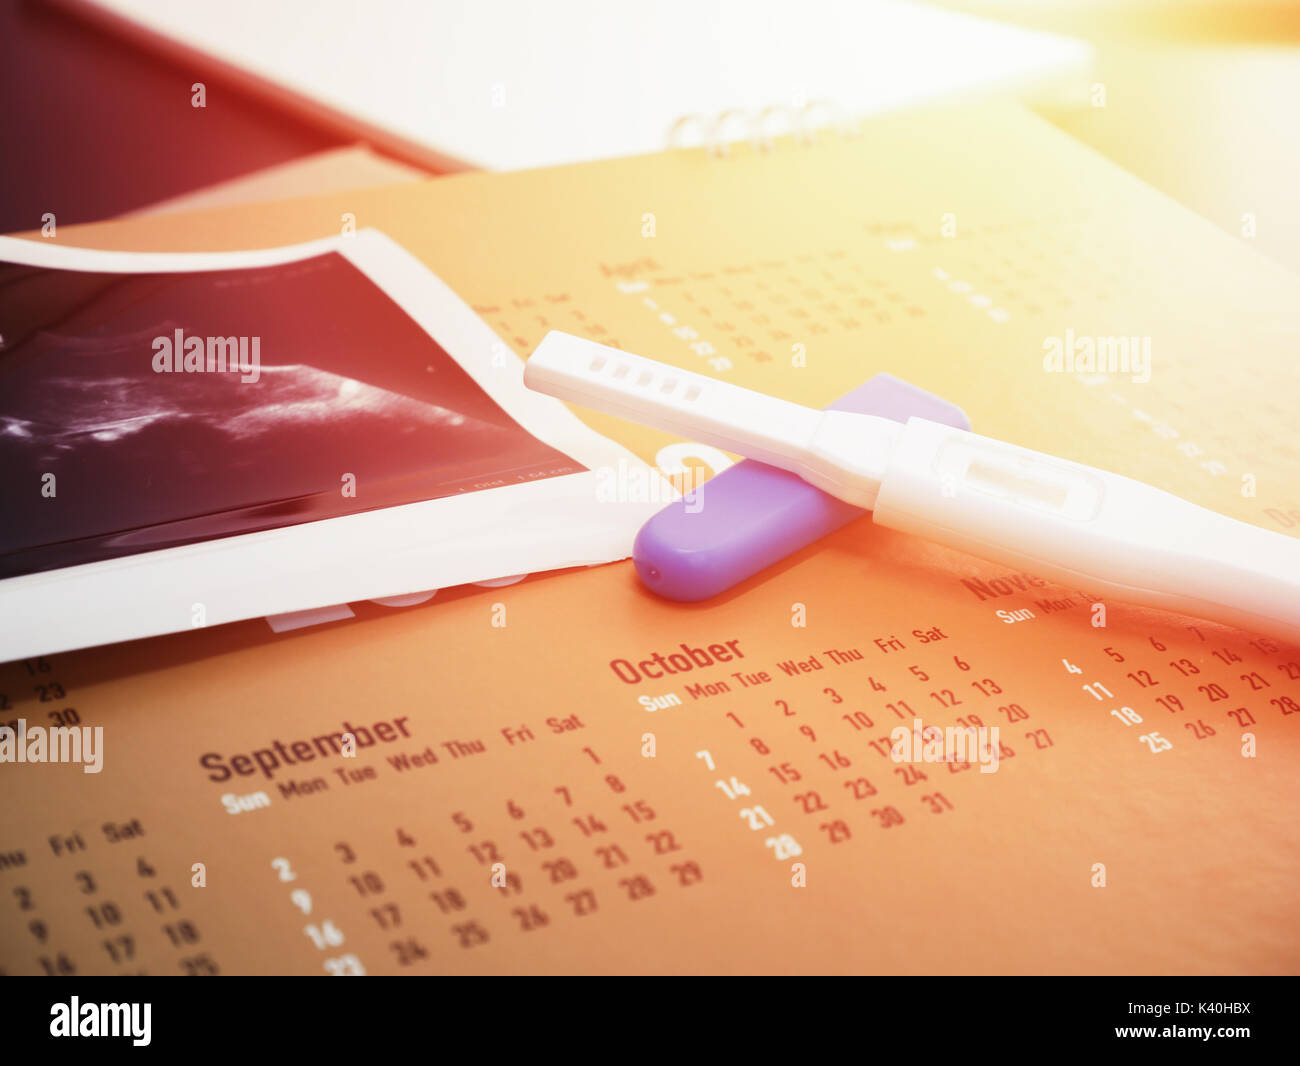 pregnancy test on calendar with ultrasound background Stock Photo